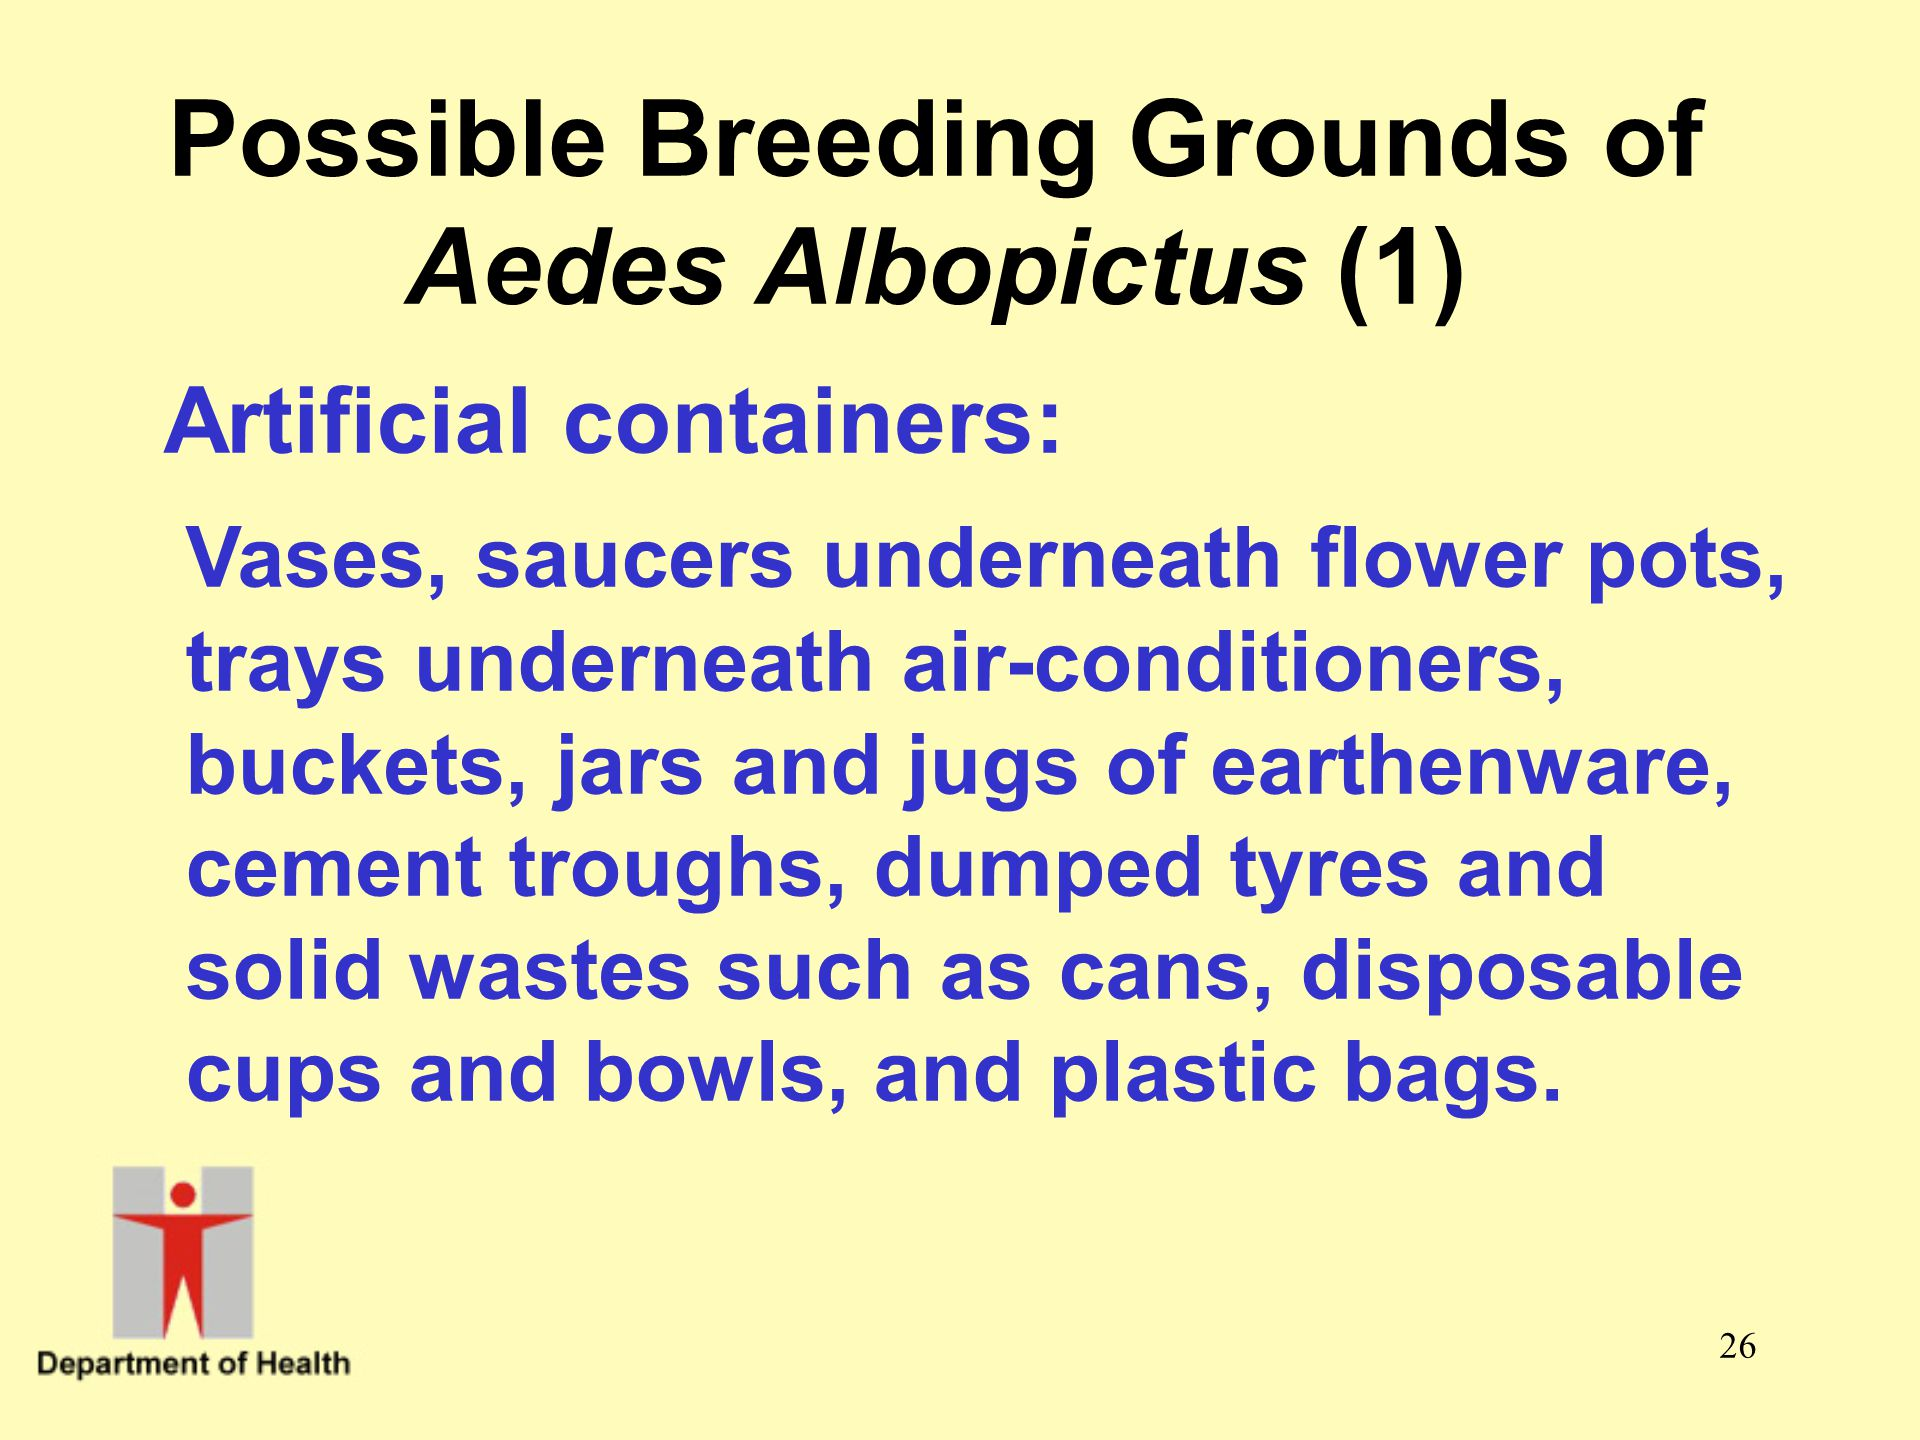 Possible Breeding Grounds of Aedes Albopictus (1)